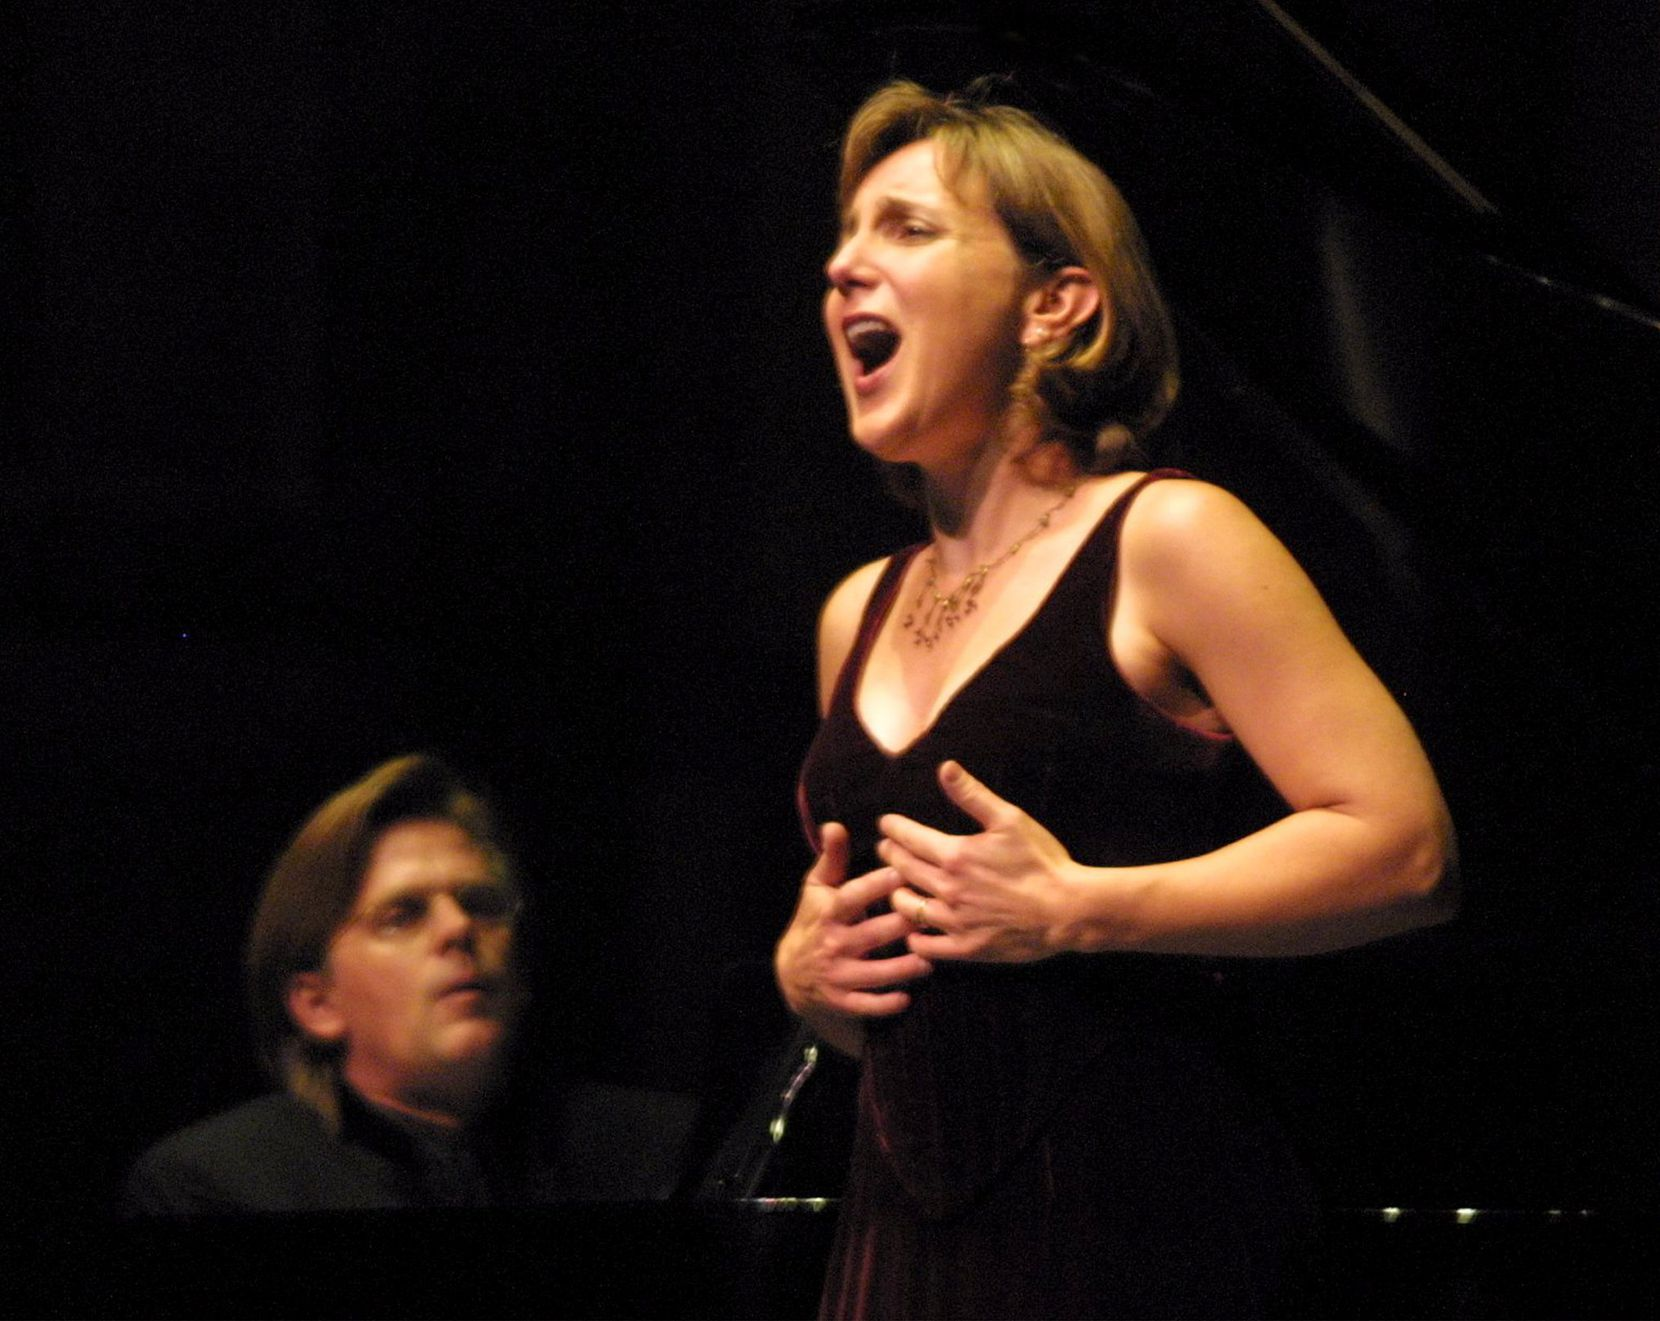 Soprano Dawn Upshaw performs with pianist Stephen Prutsman at Bass Performance Hall in Fort Worth in 2002.